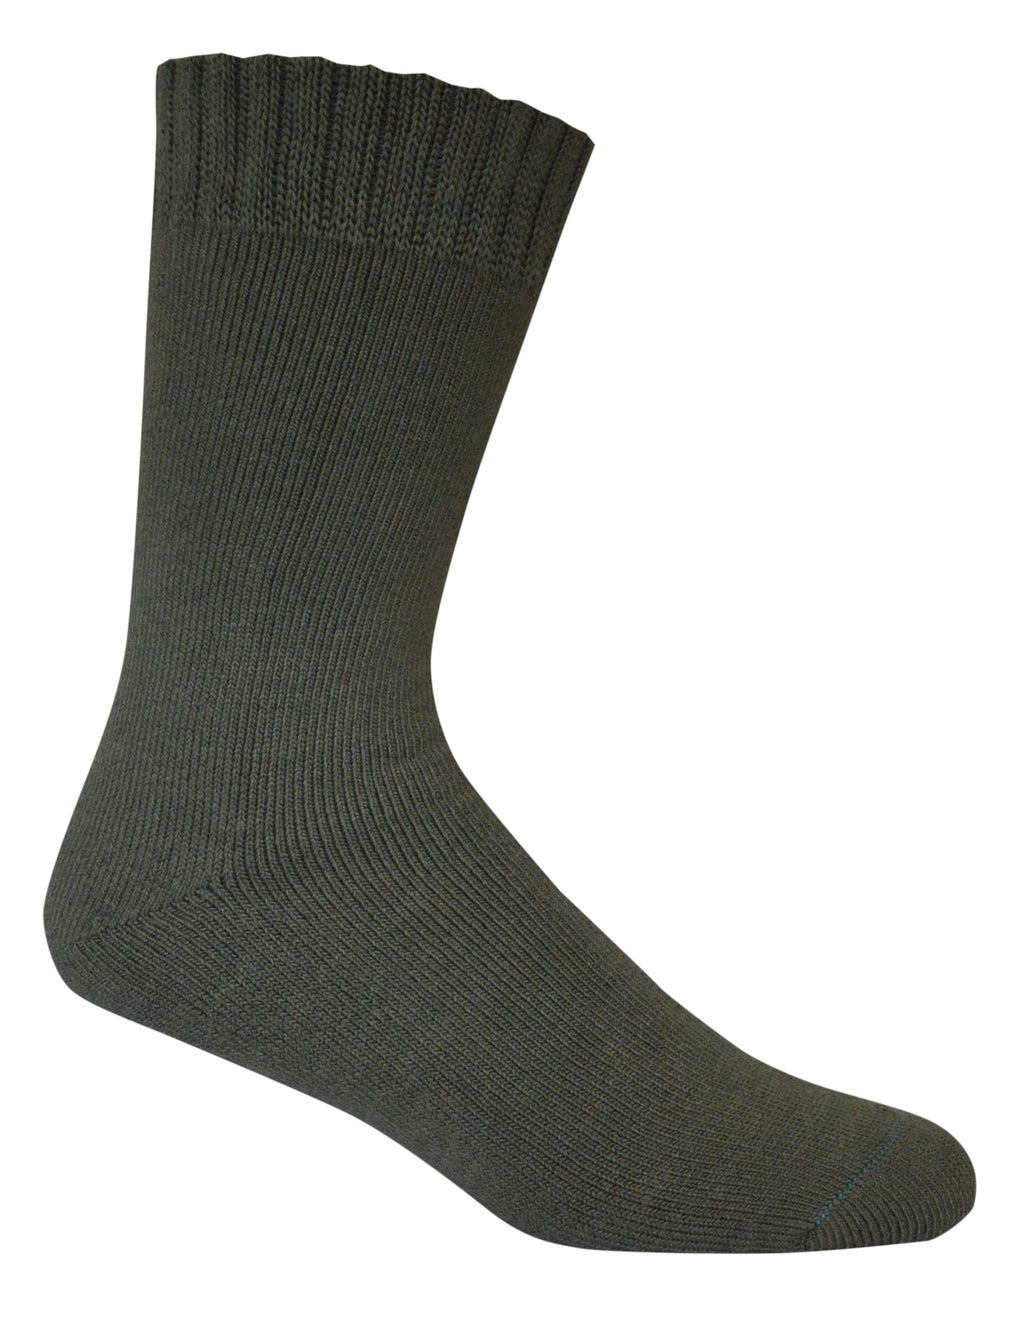 BT | Mens | Socks | Bamboo | Extra Thick | Khaki